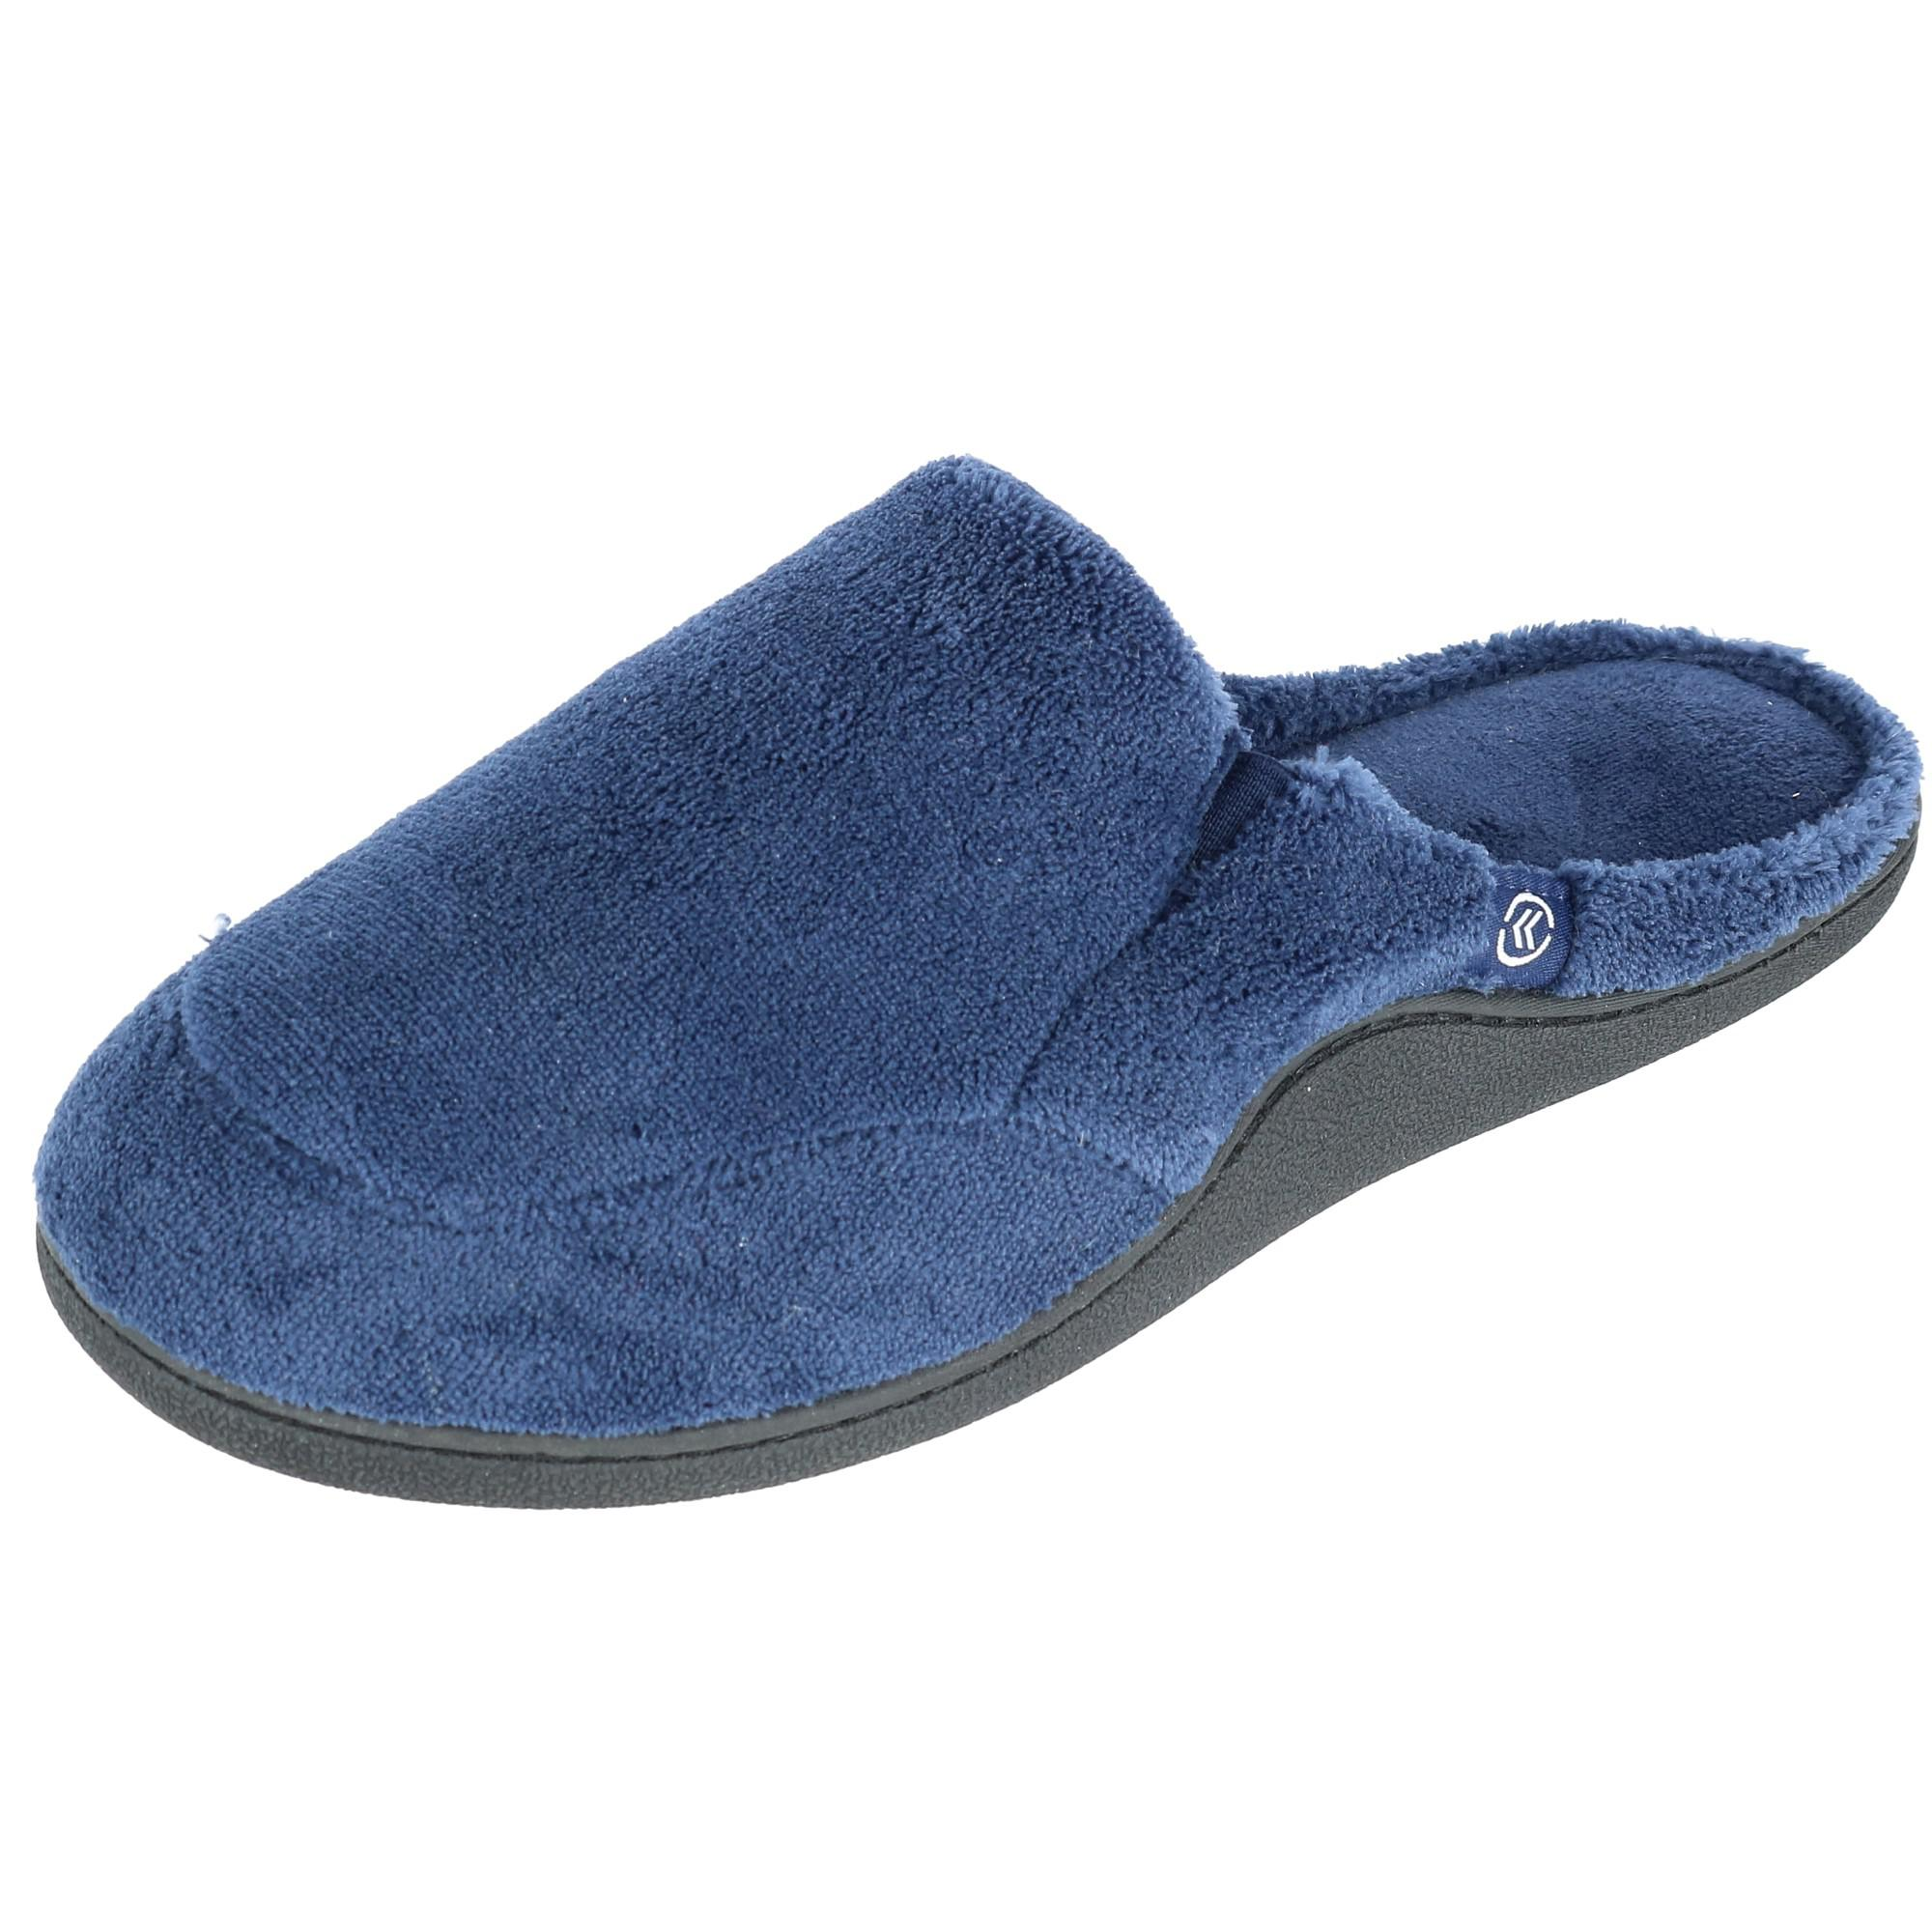 6be29d317 ISOTONER Mens Microterry Open Back Clog Slippers Medium Navy. About this  product. Picture 1 of 7  Picture 2 of 7  Picture 3 of 7 ...